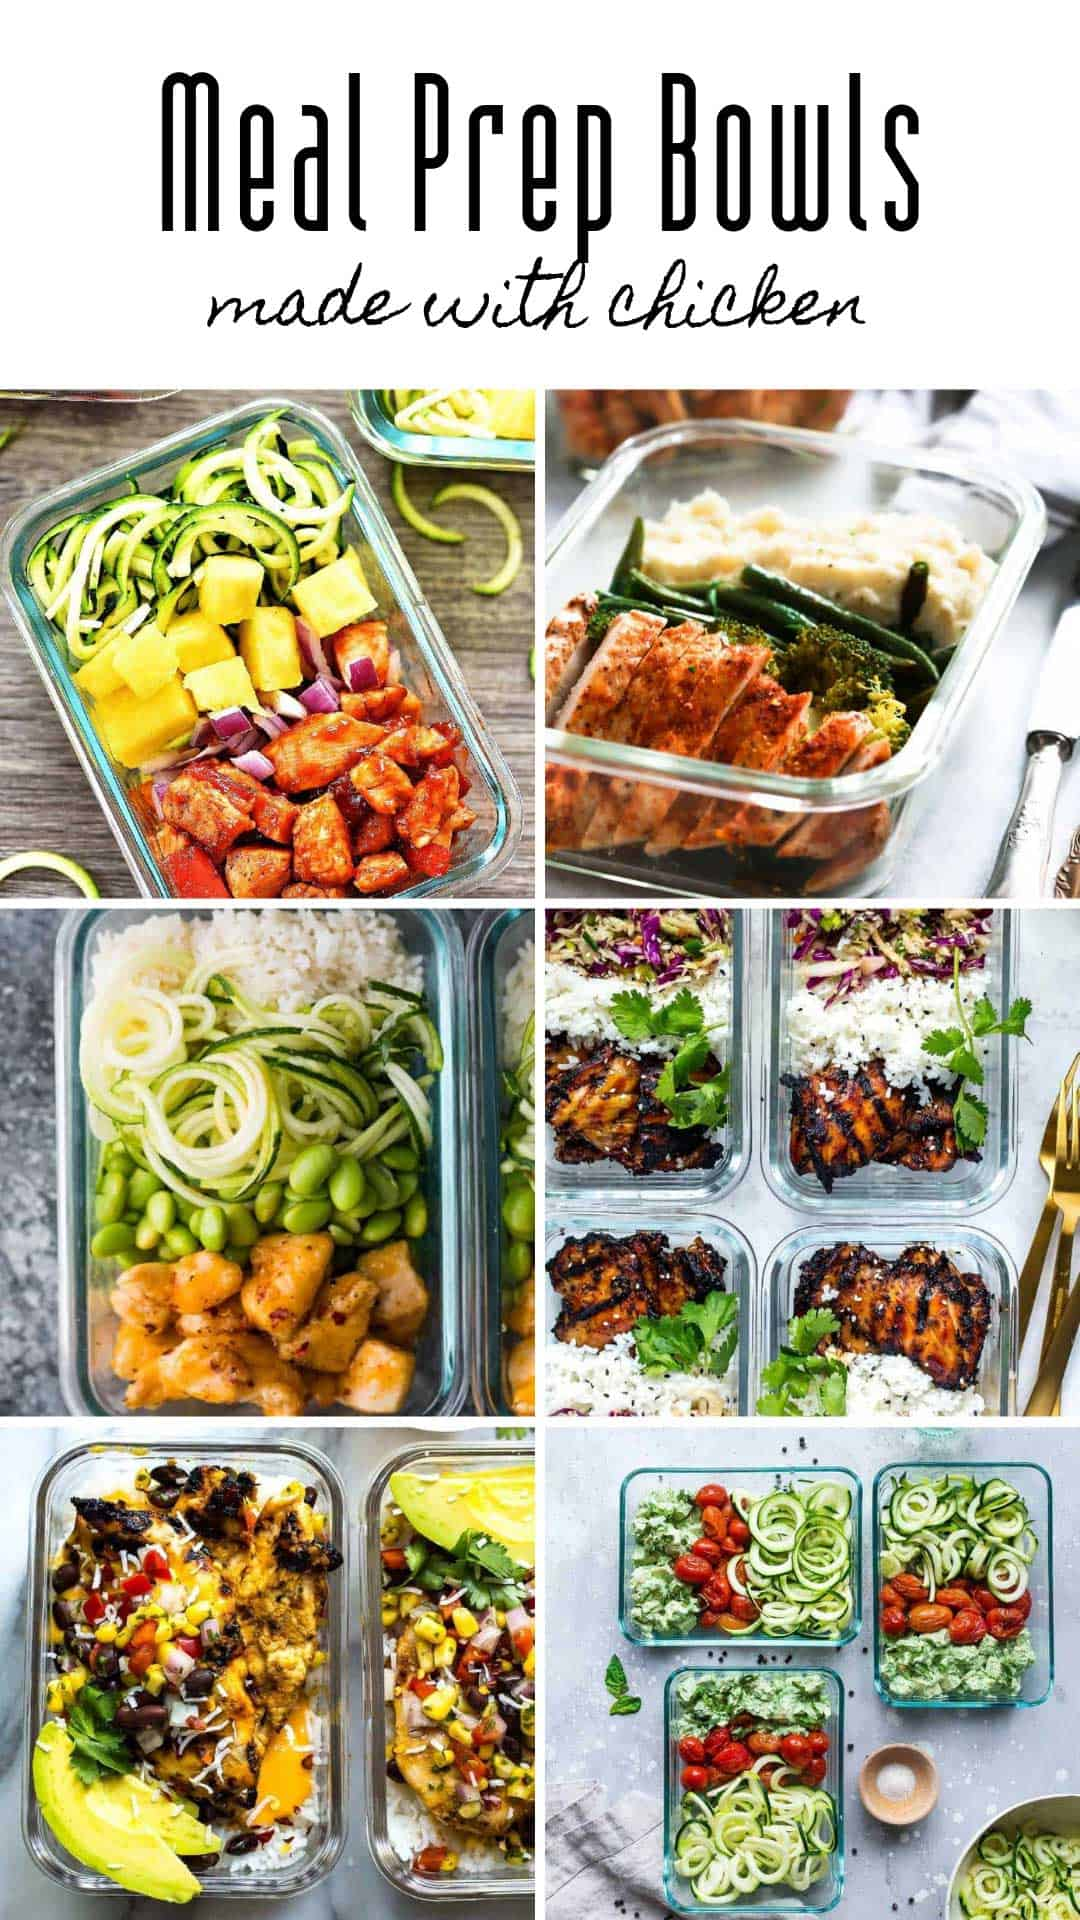 So many healthy meal prep bowls you can make with chicken! Perfect for lunch or dinner for your meal plan for the week! #mealprep #mealplan #mealprepping